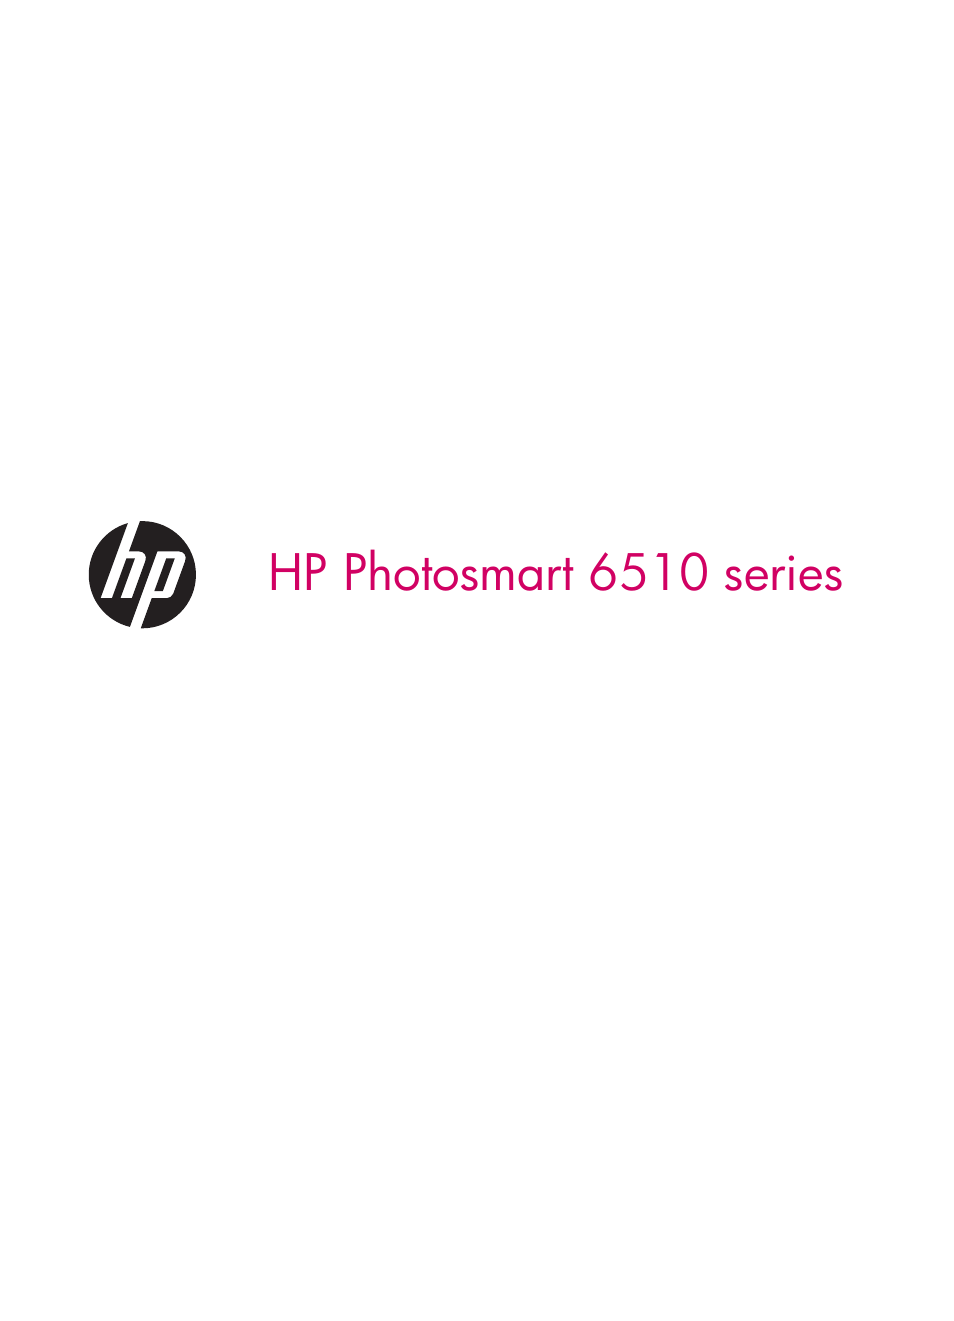 HP 6510 User Manual | 64 pages | Also for: Photosmart 6515 e-All-in-One  Printer - B211a